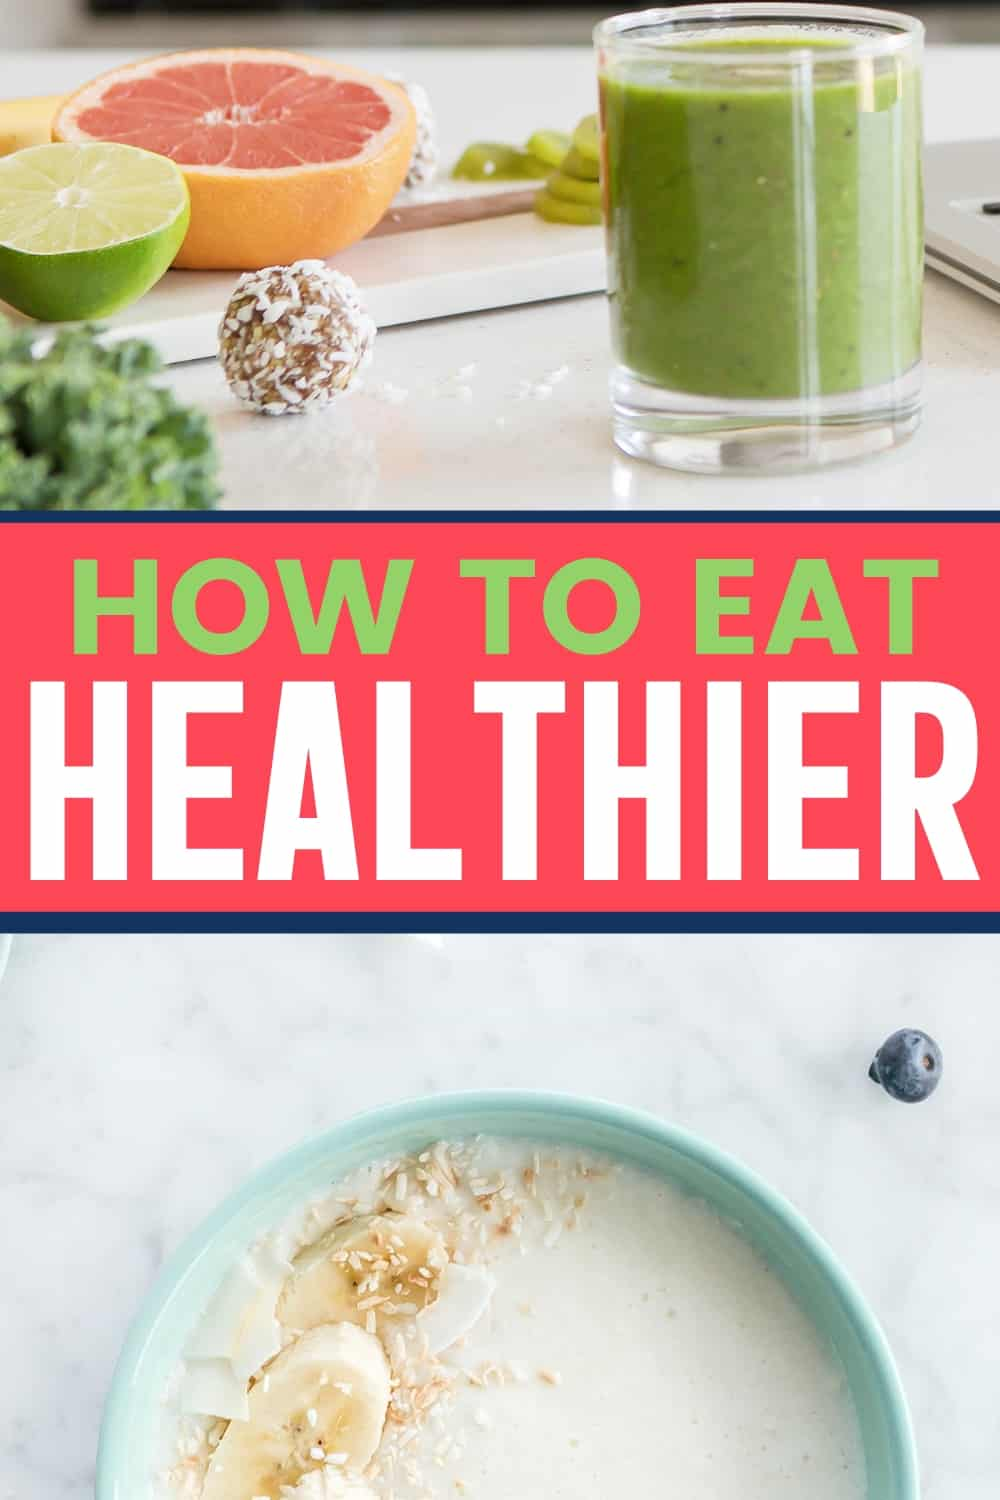 Simple Tip To Eat Healthier